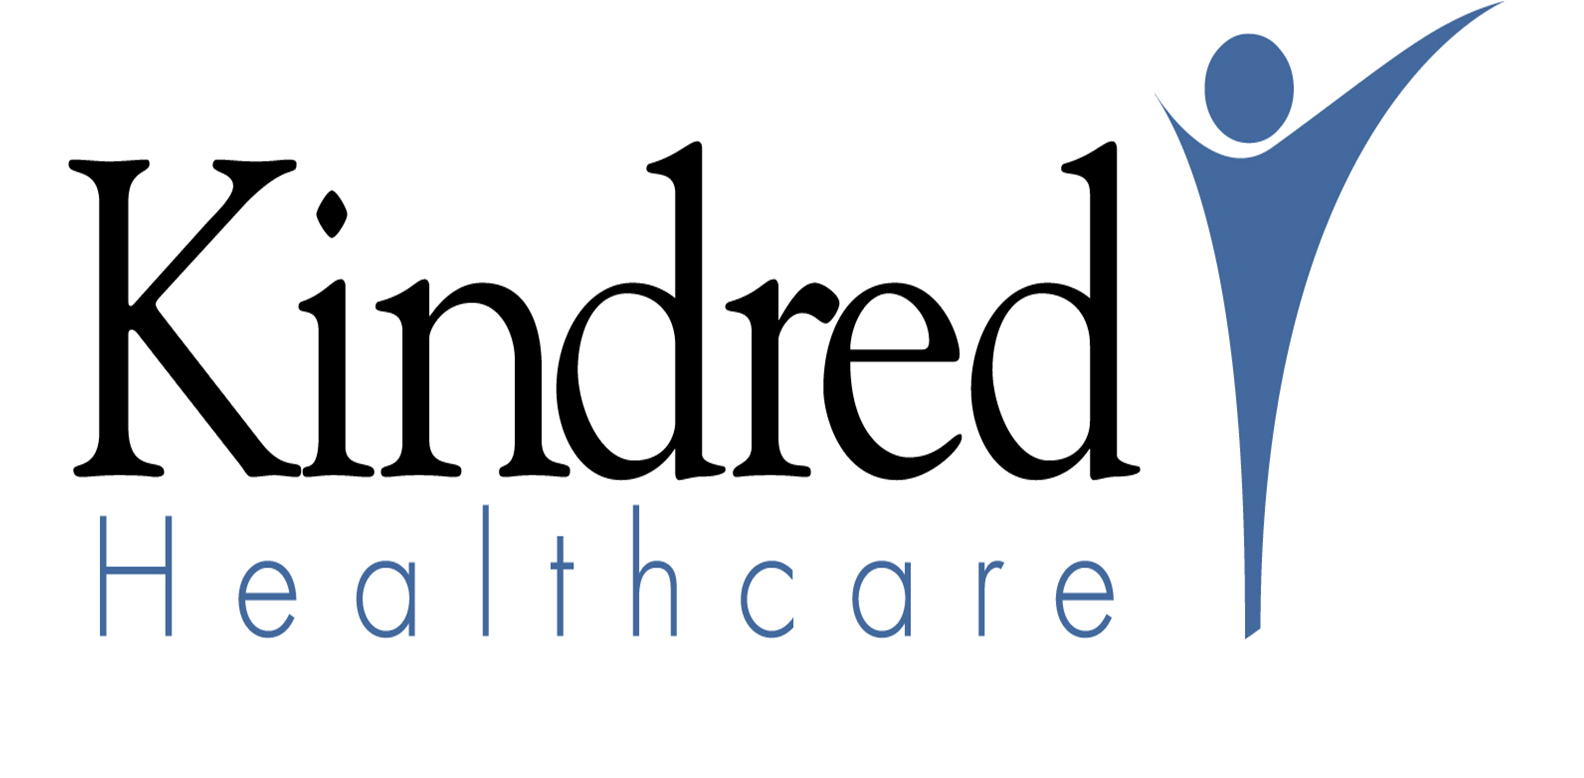 top internship interview questions job fair open interviews every thursday kindred hospital central tampa